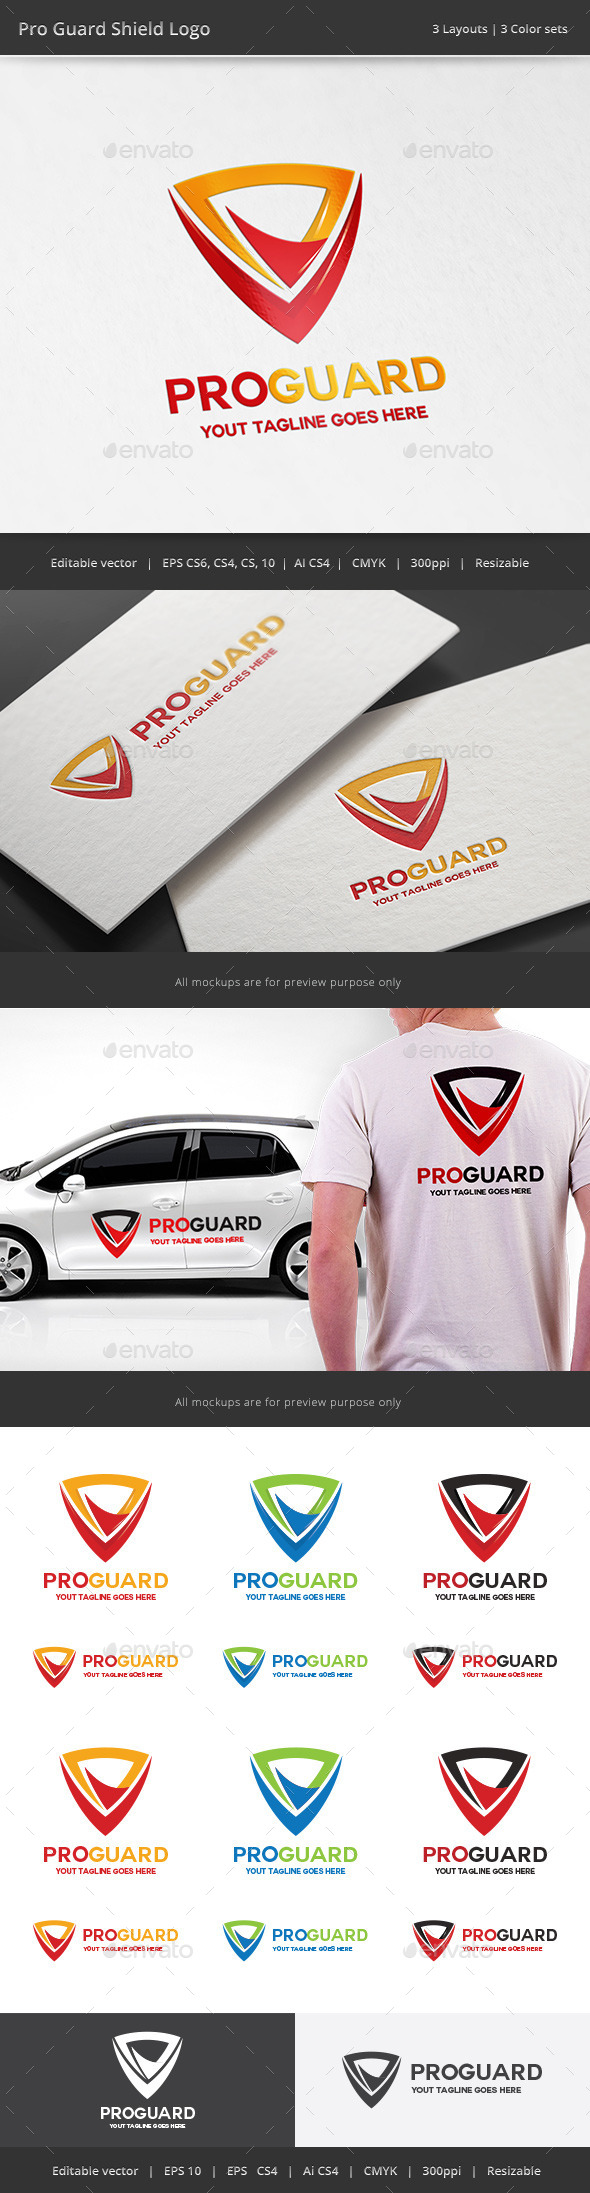 GraphicRiver Pro Guard Shield Logo 11415962